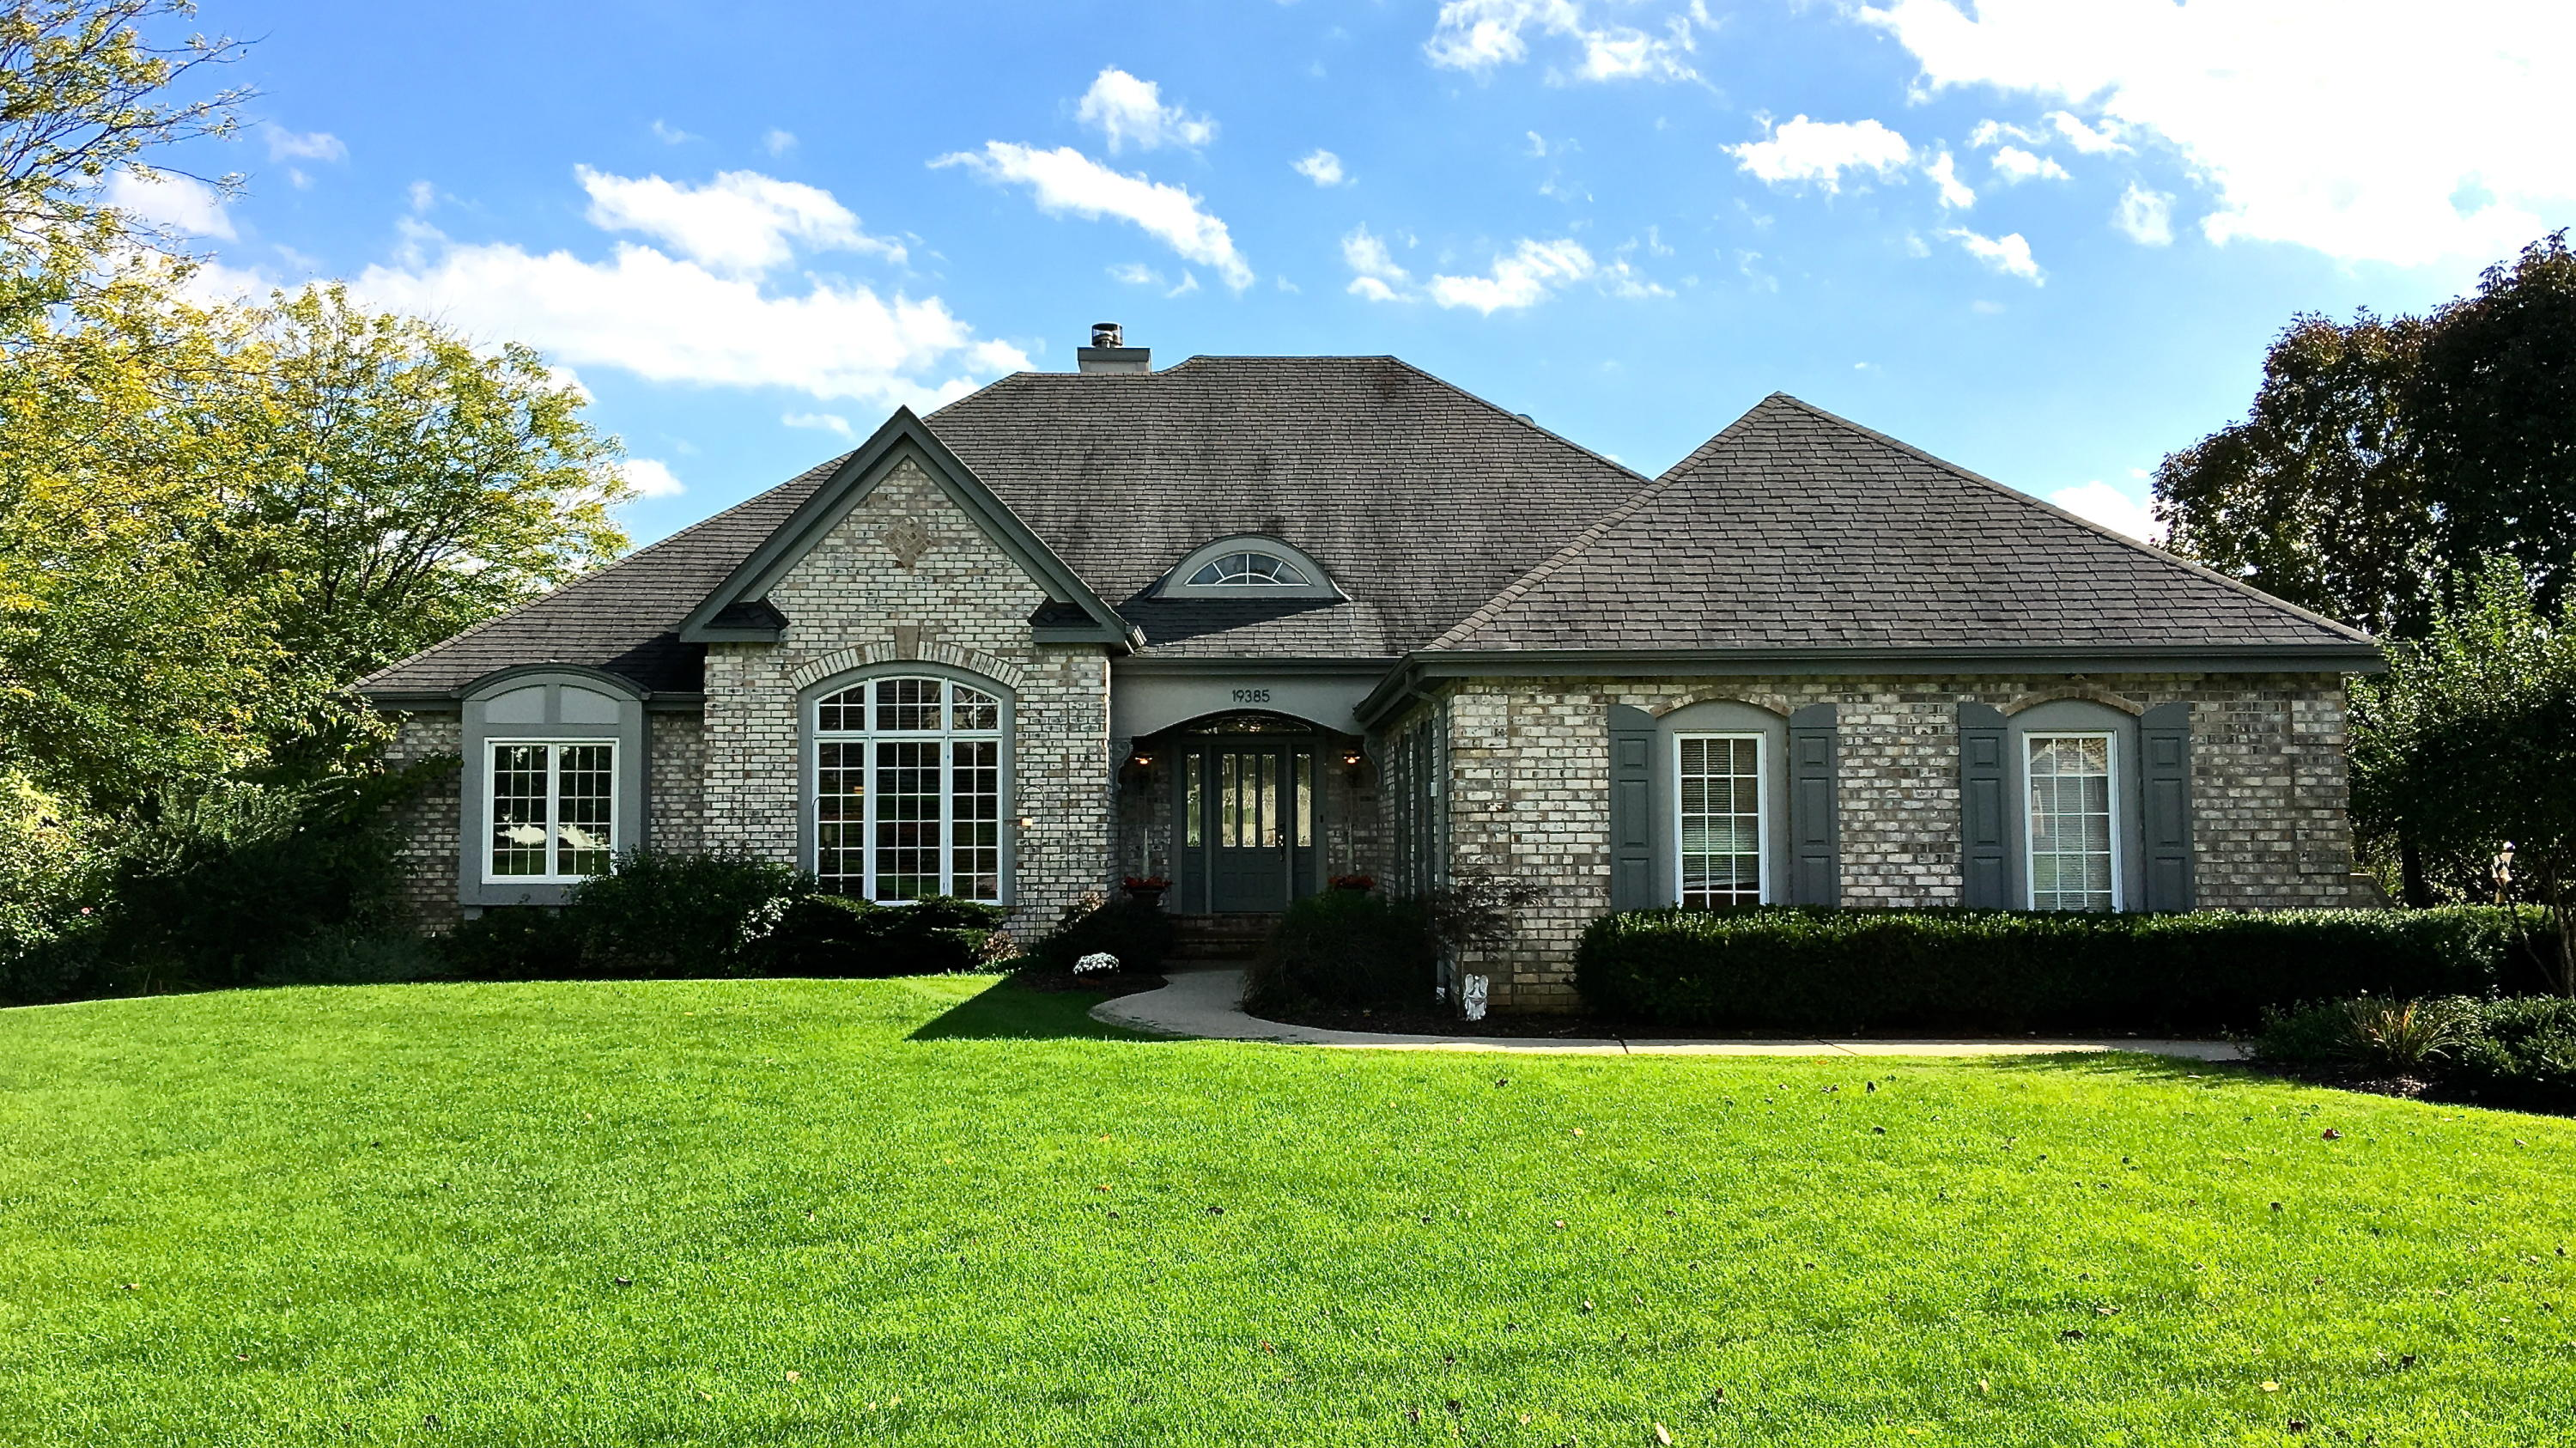 19385 Whitehall Dr, Brookfield, Wisconsin 53045, 5 Bedrooms Bedrooms, 12 Rooms Rooms,4 BathroomsBathrooms,Single-Family,For Sale,Whitehall Dr,1609576